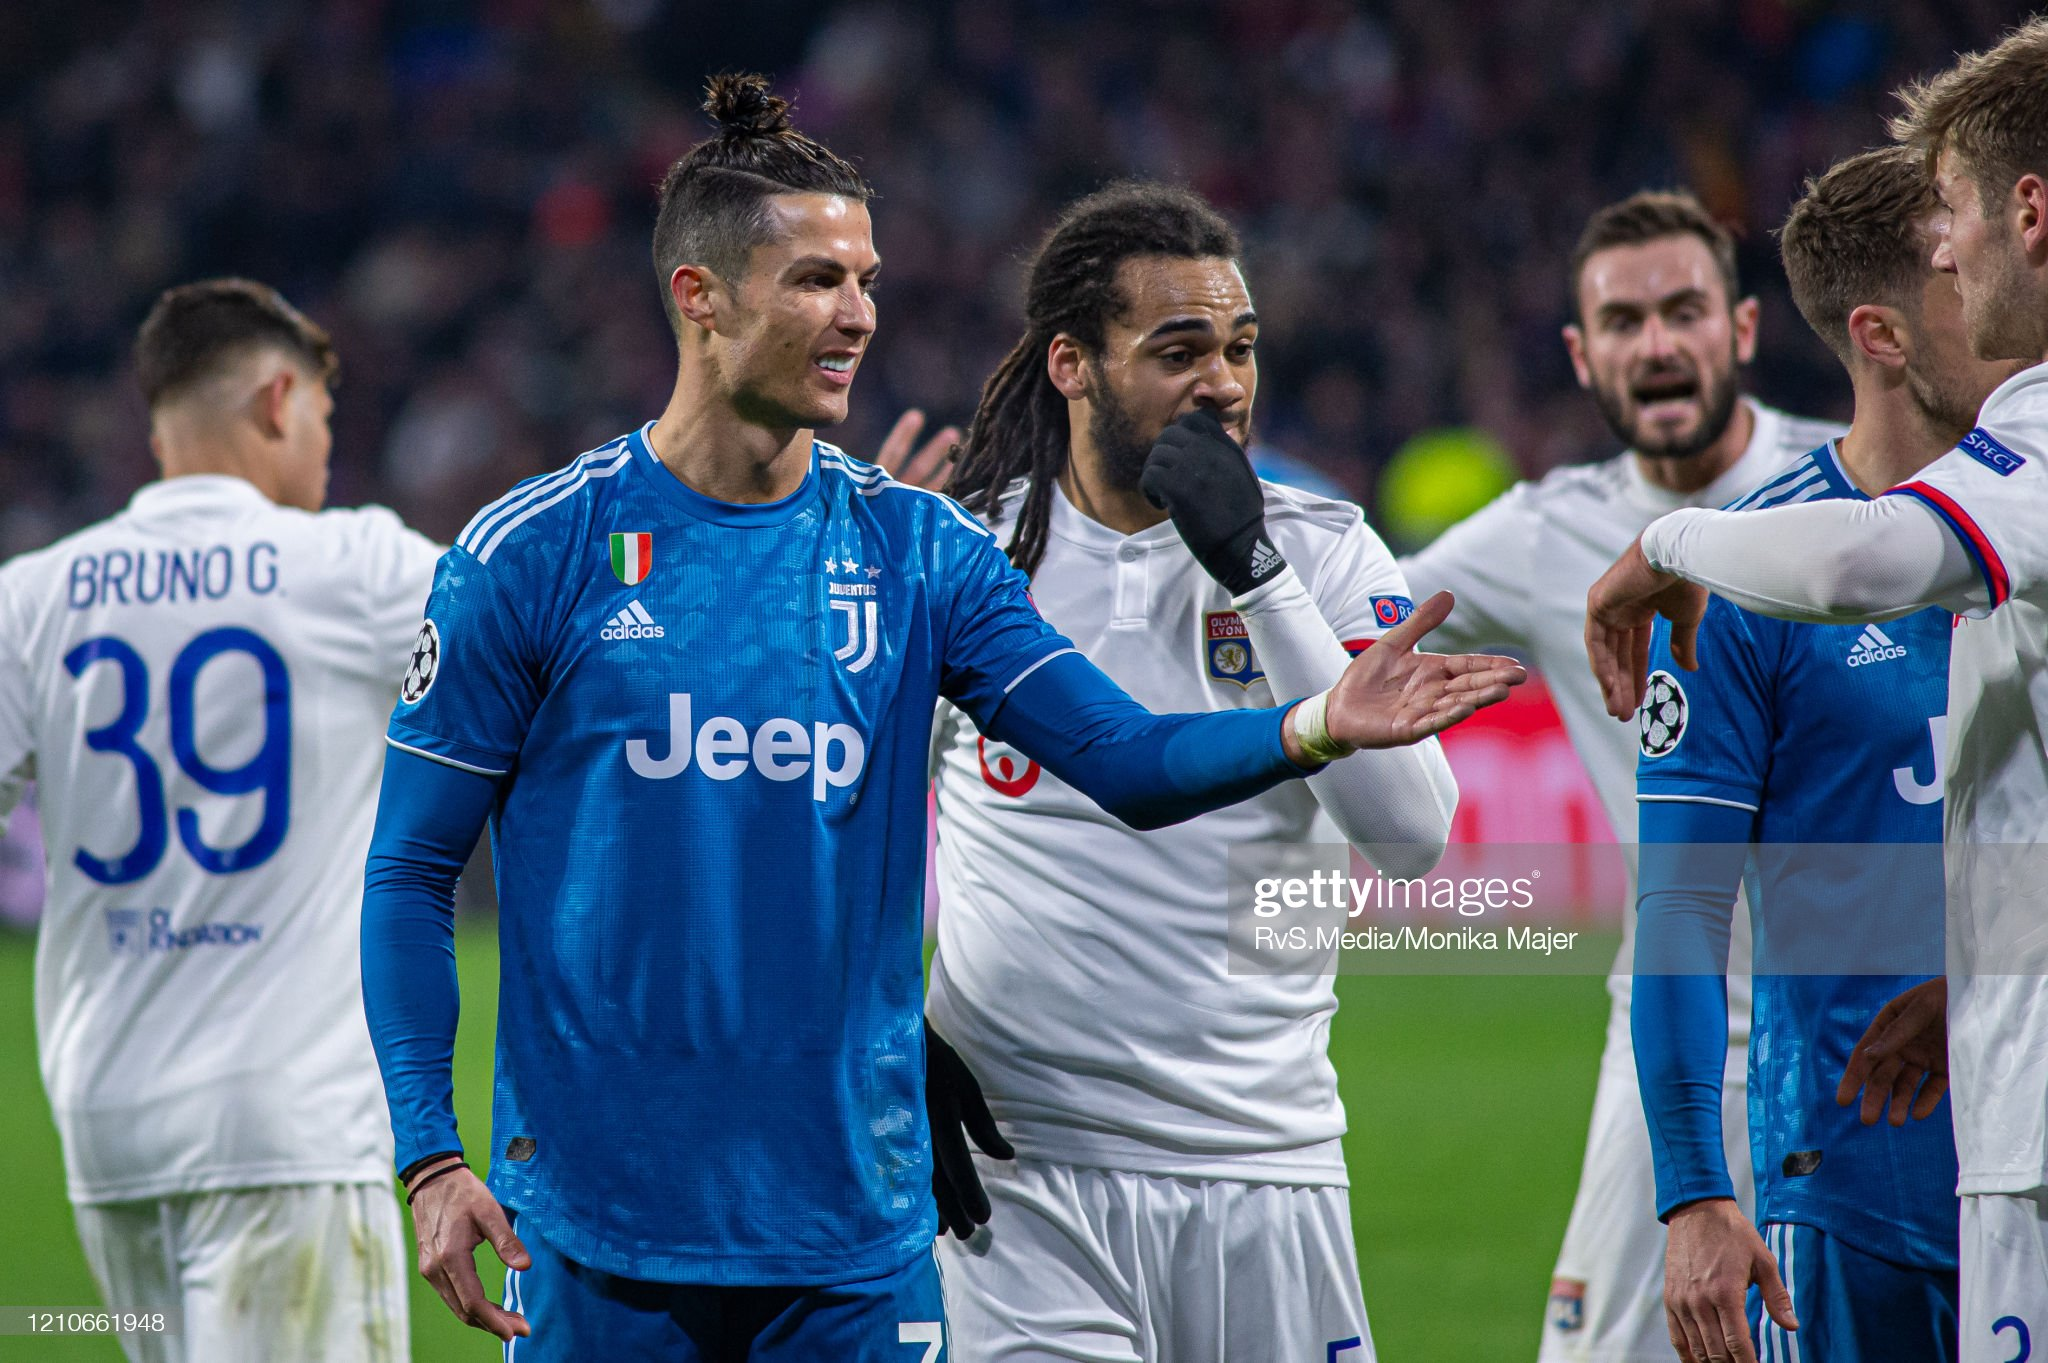 Juventus v Lyon Preview, prediction and odds